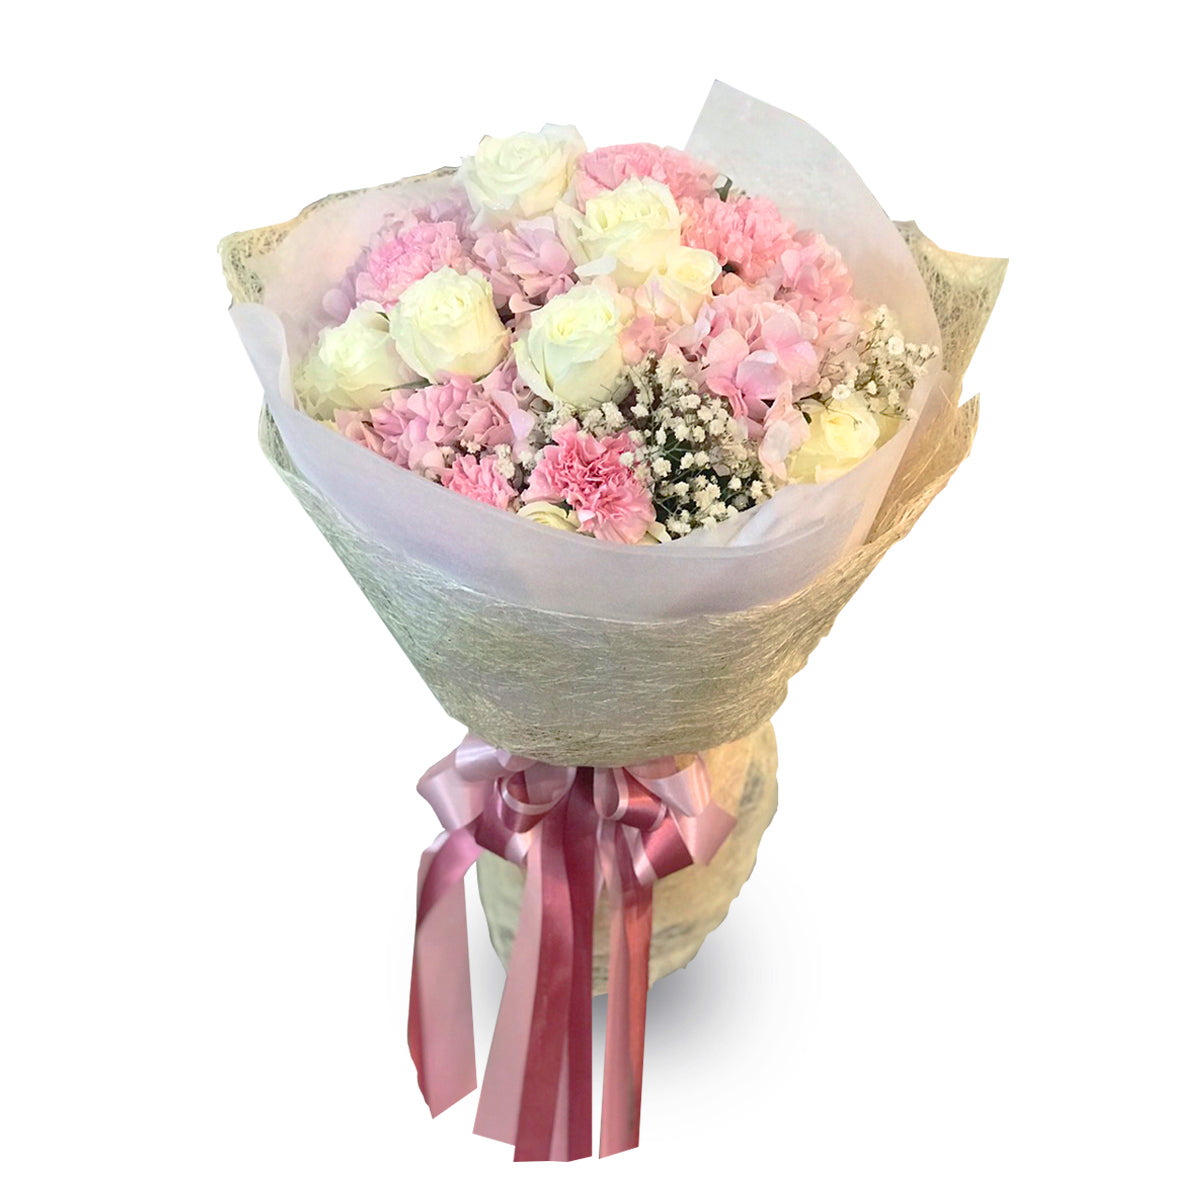 Romantic Bouquet With Roses, Carnation And Hydrangea